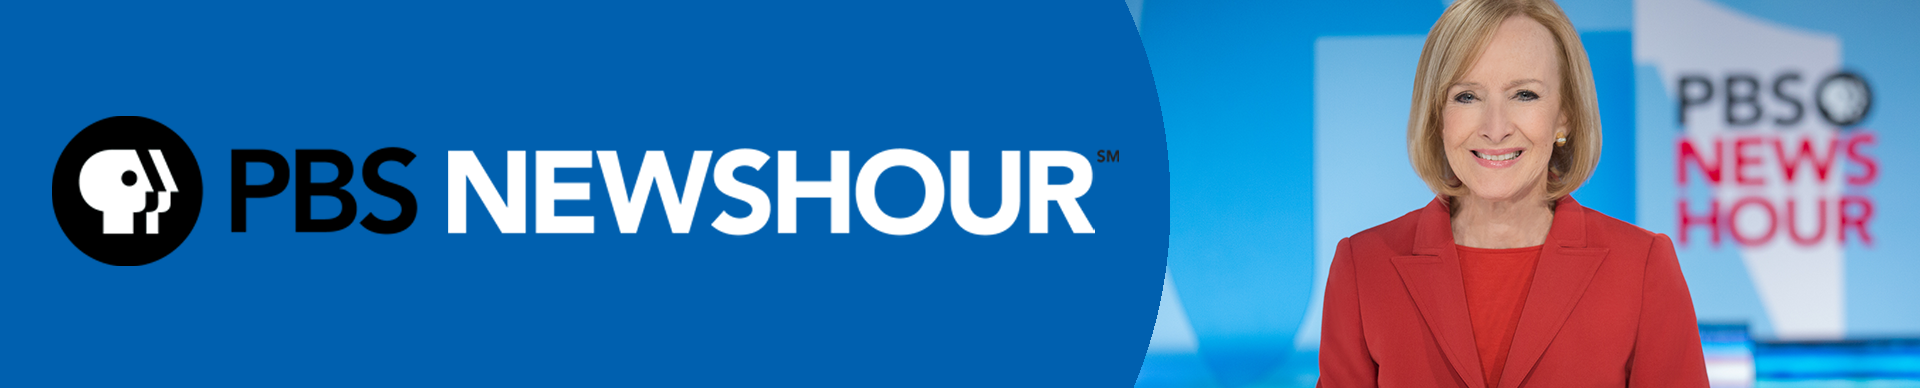 PBS Newshour Header